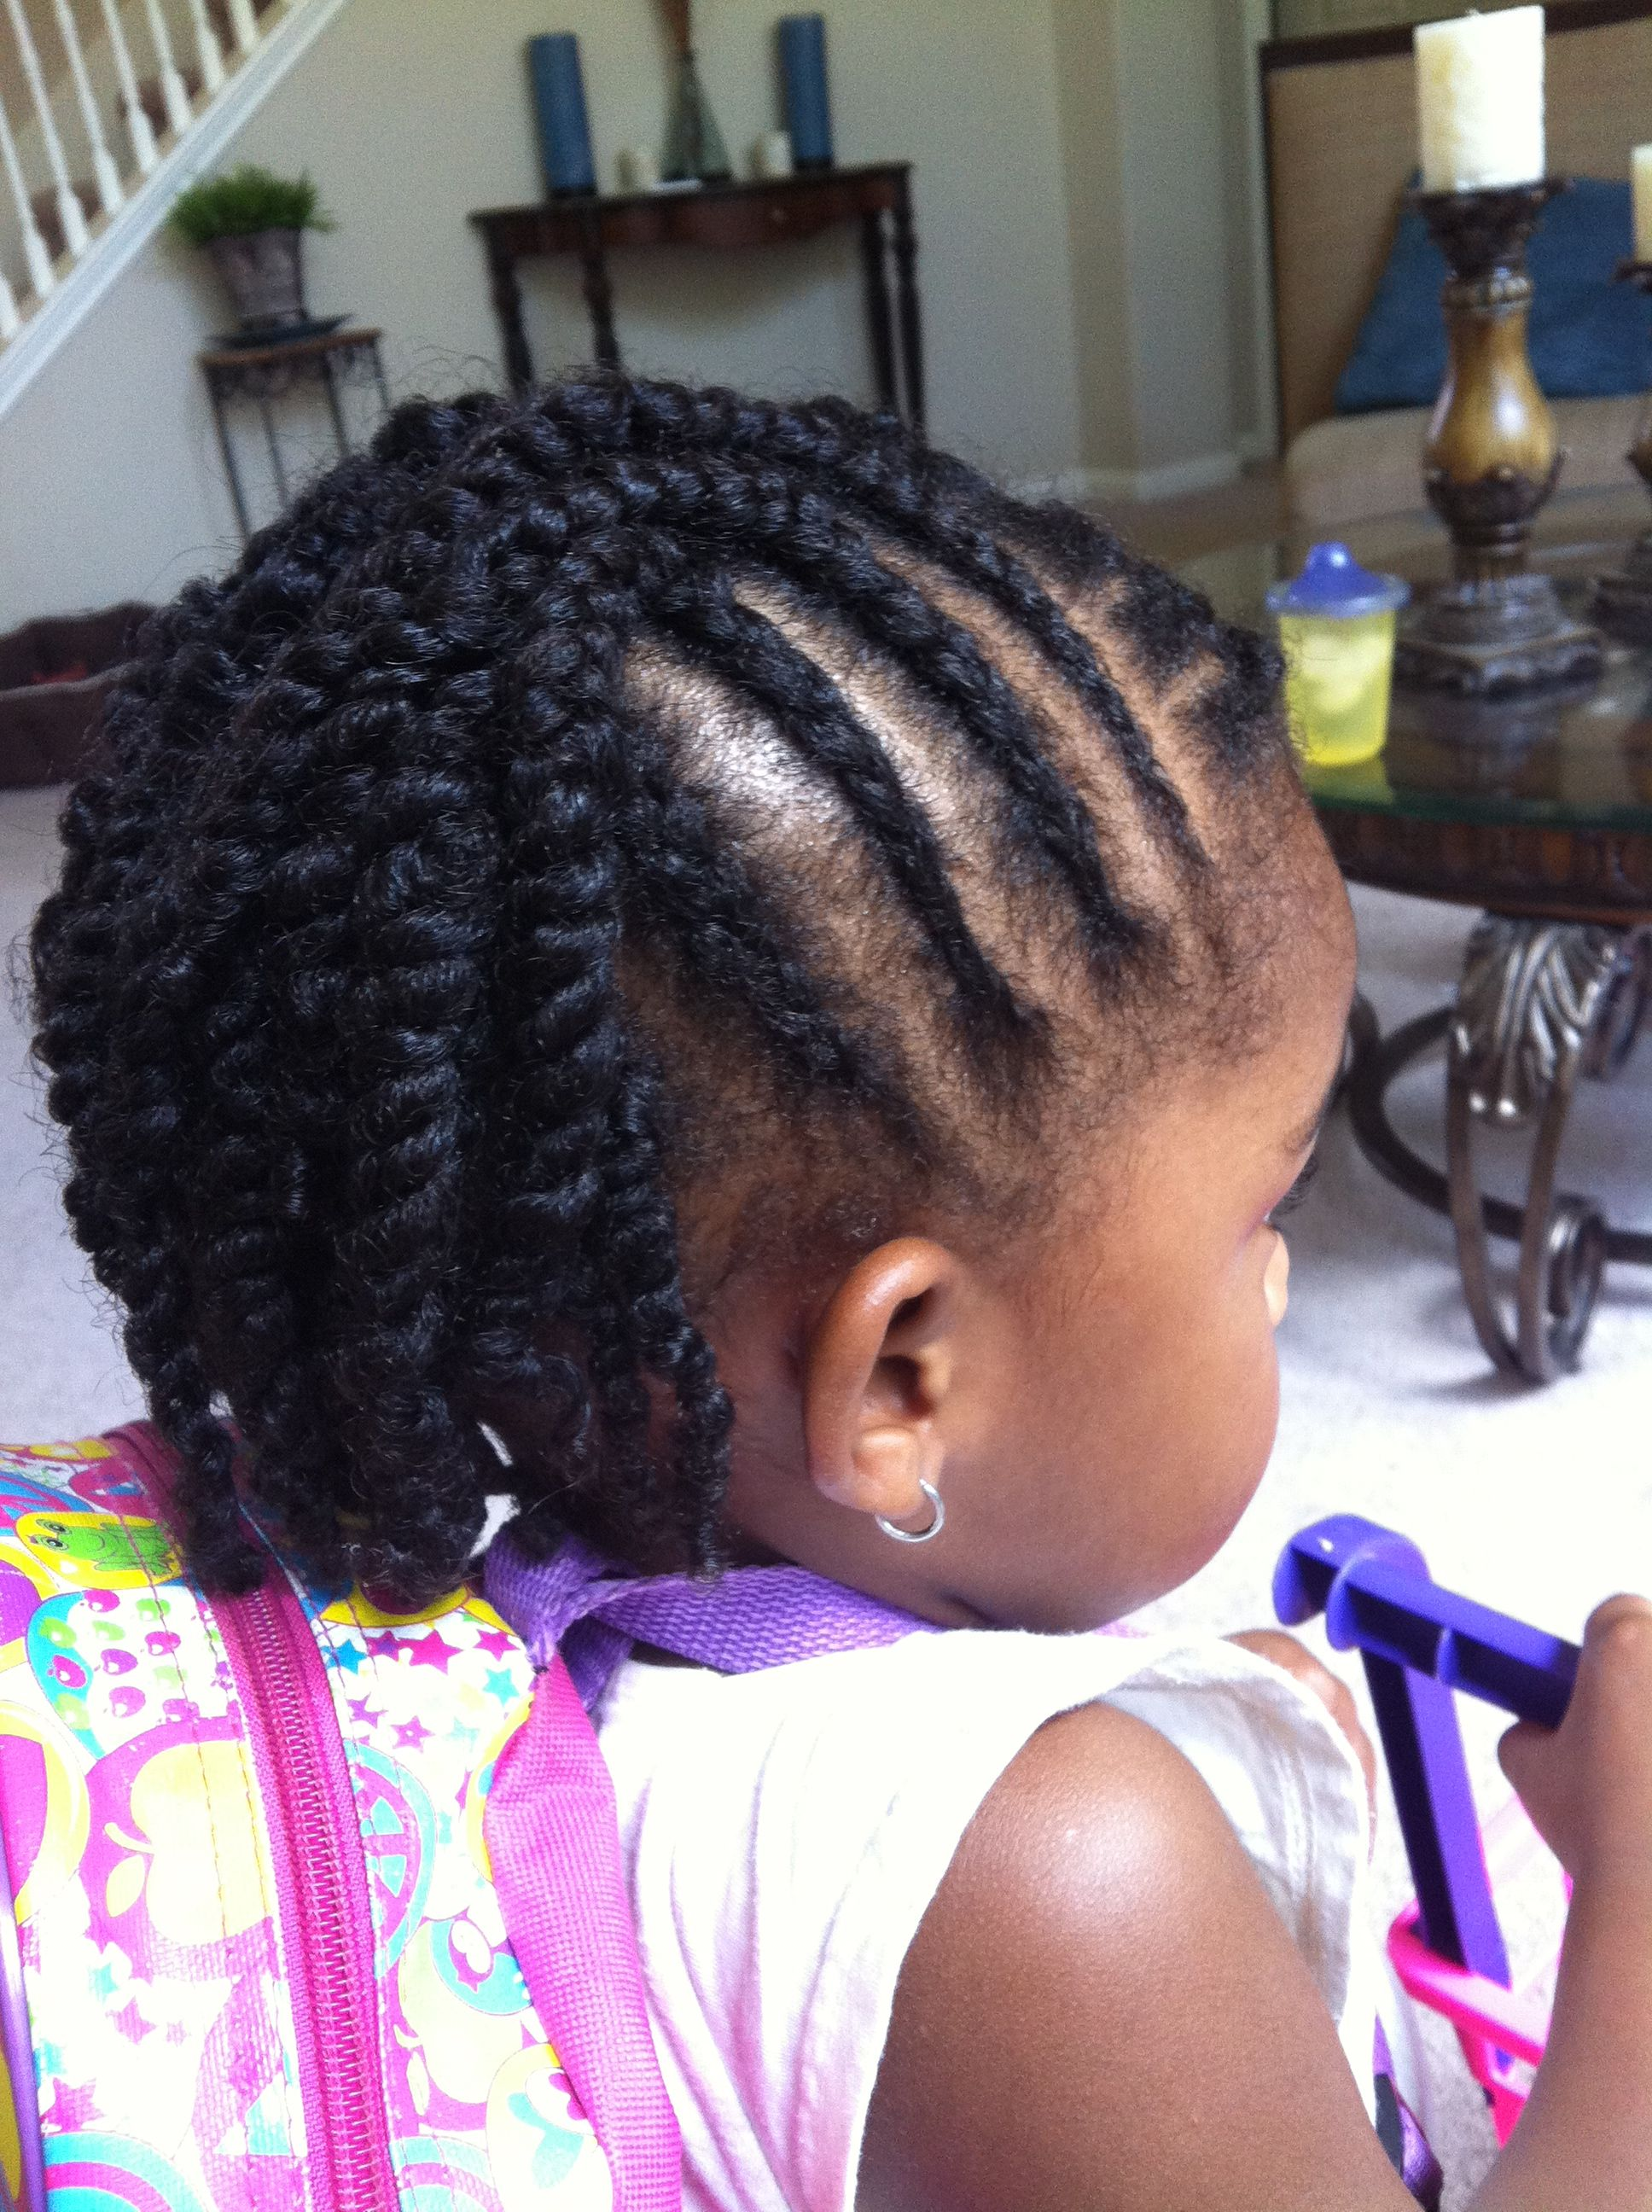 Natural Hairstyles For Kids 19 Easy To Manage Styles Natural Hairstyles For Kids Natural Hair Styles Kids Braided Hairstyles